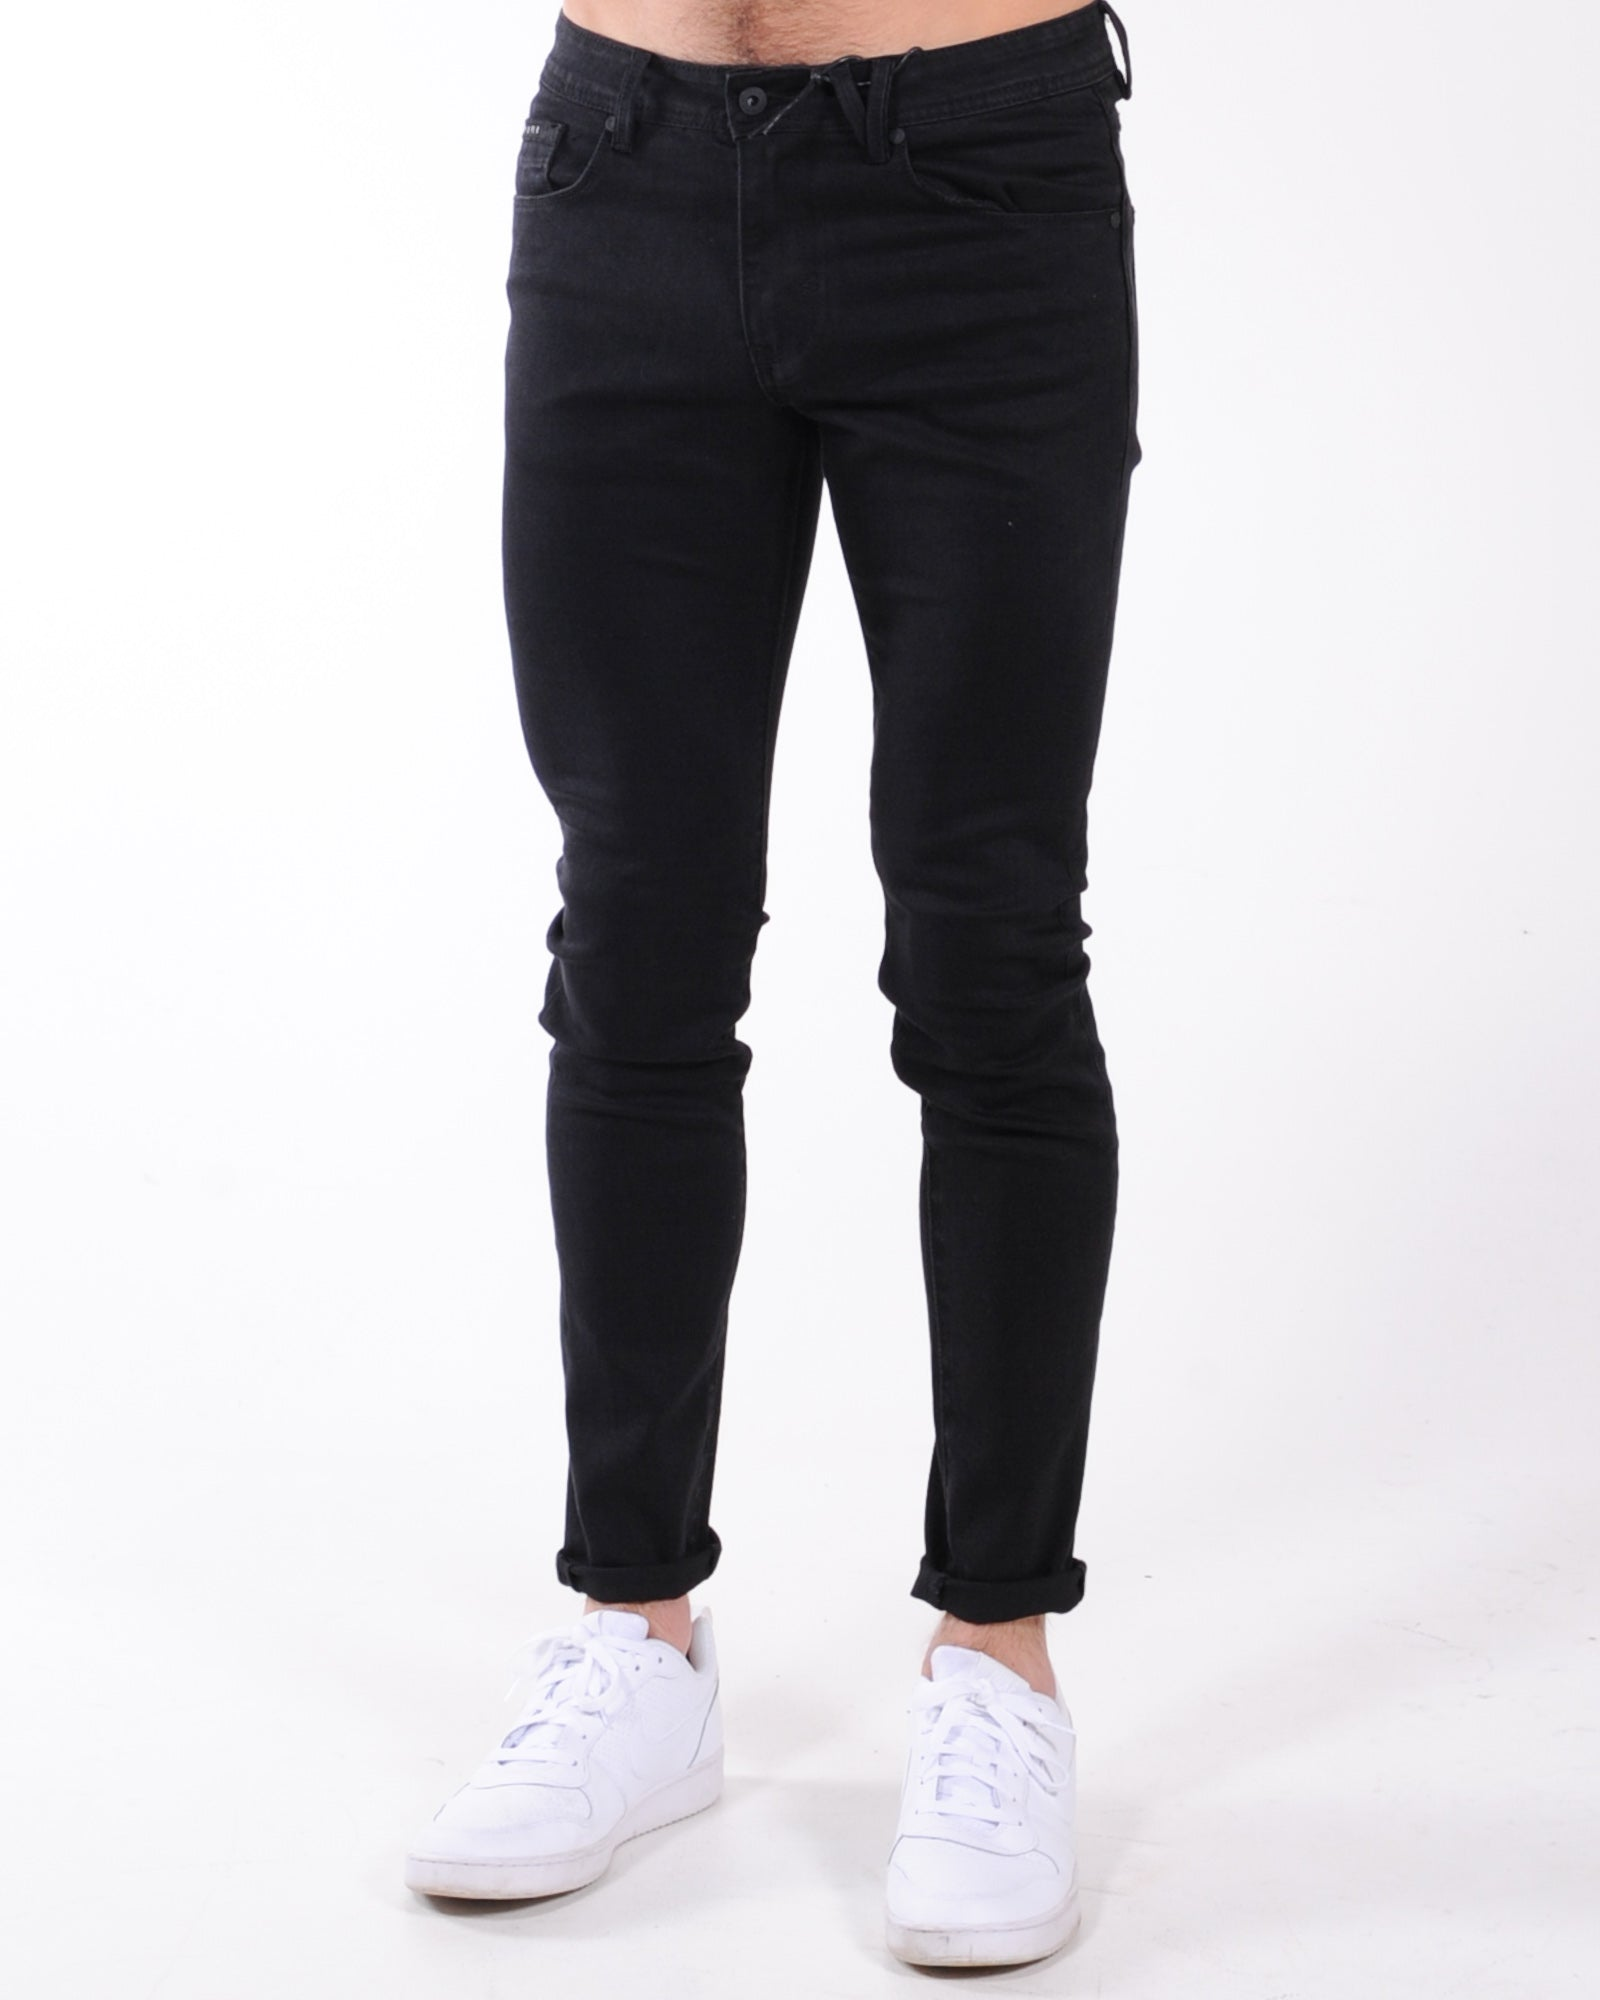 Wndrr Rumour Slim Fit Jean - Black